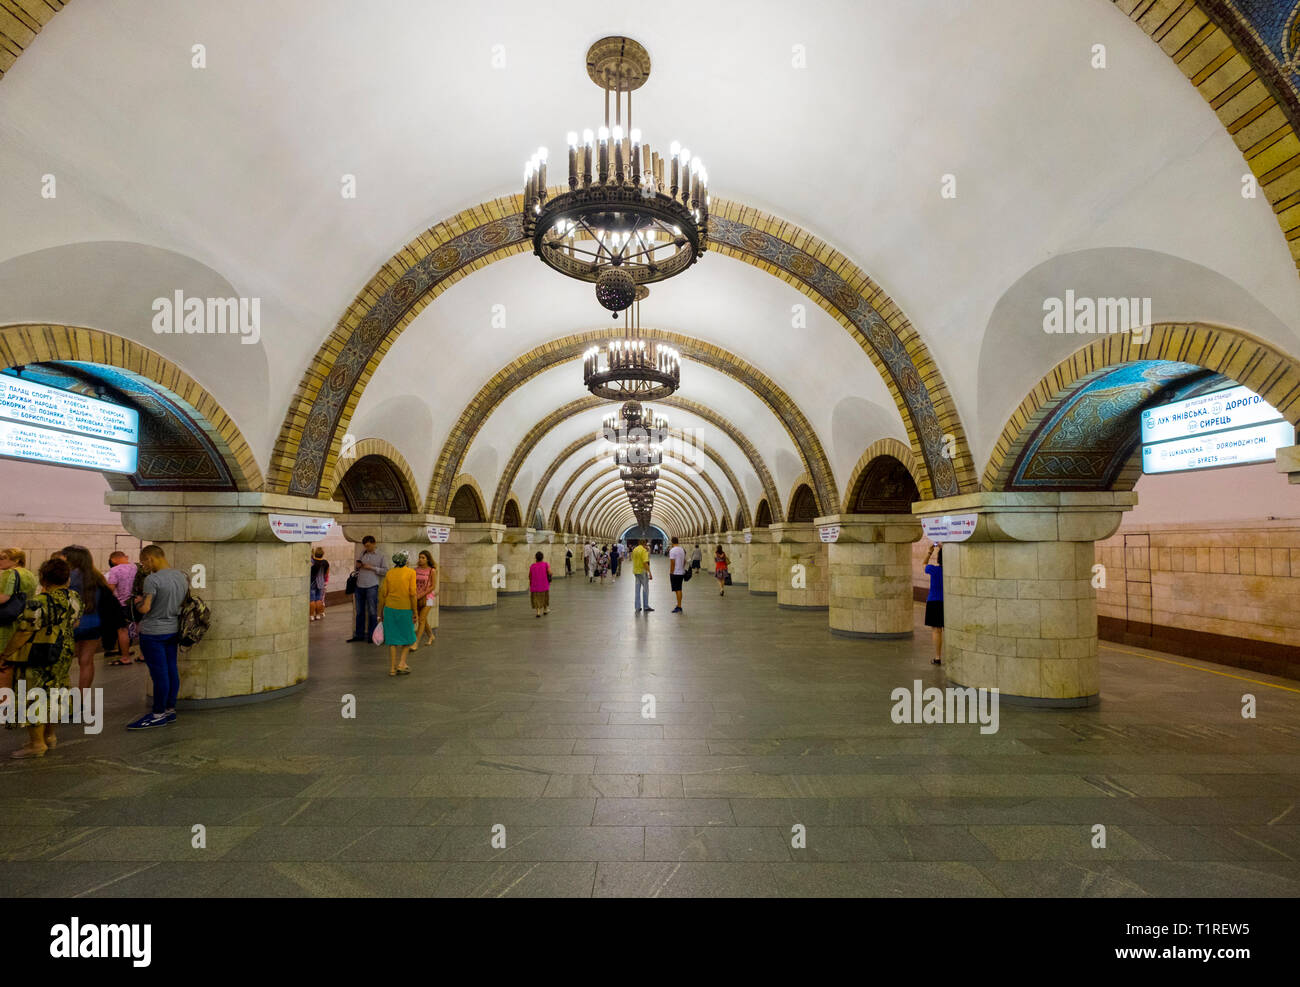 One of the classically designed Metro stations in Kiev, Ukraine. - Stock Image